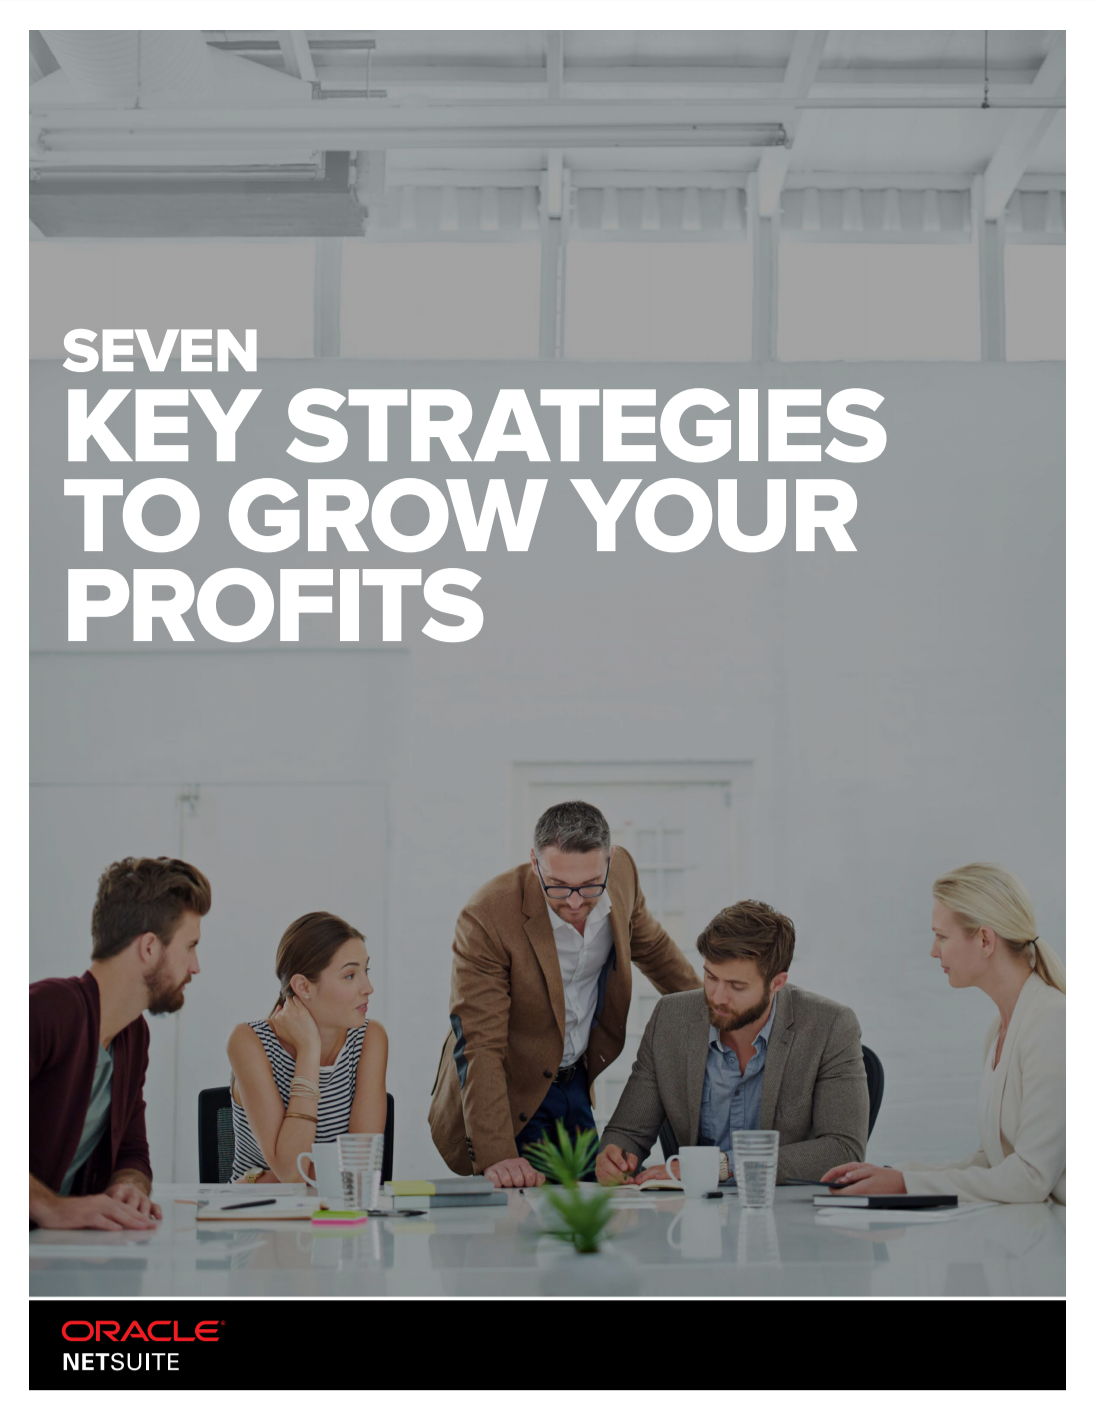 """Seven Key Strategies To Grow Your Profits - Click """"Download"""" to get the full white paper."""